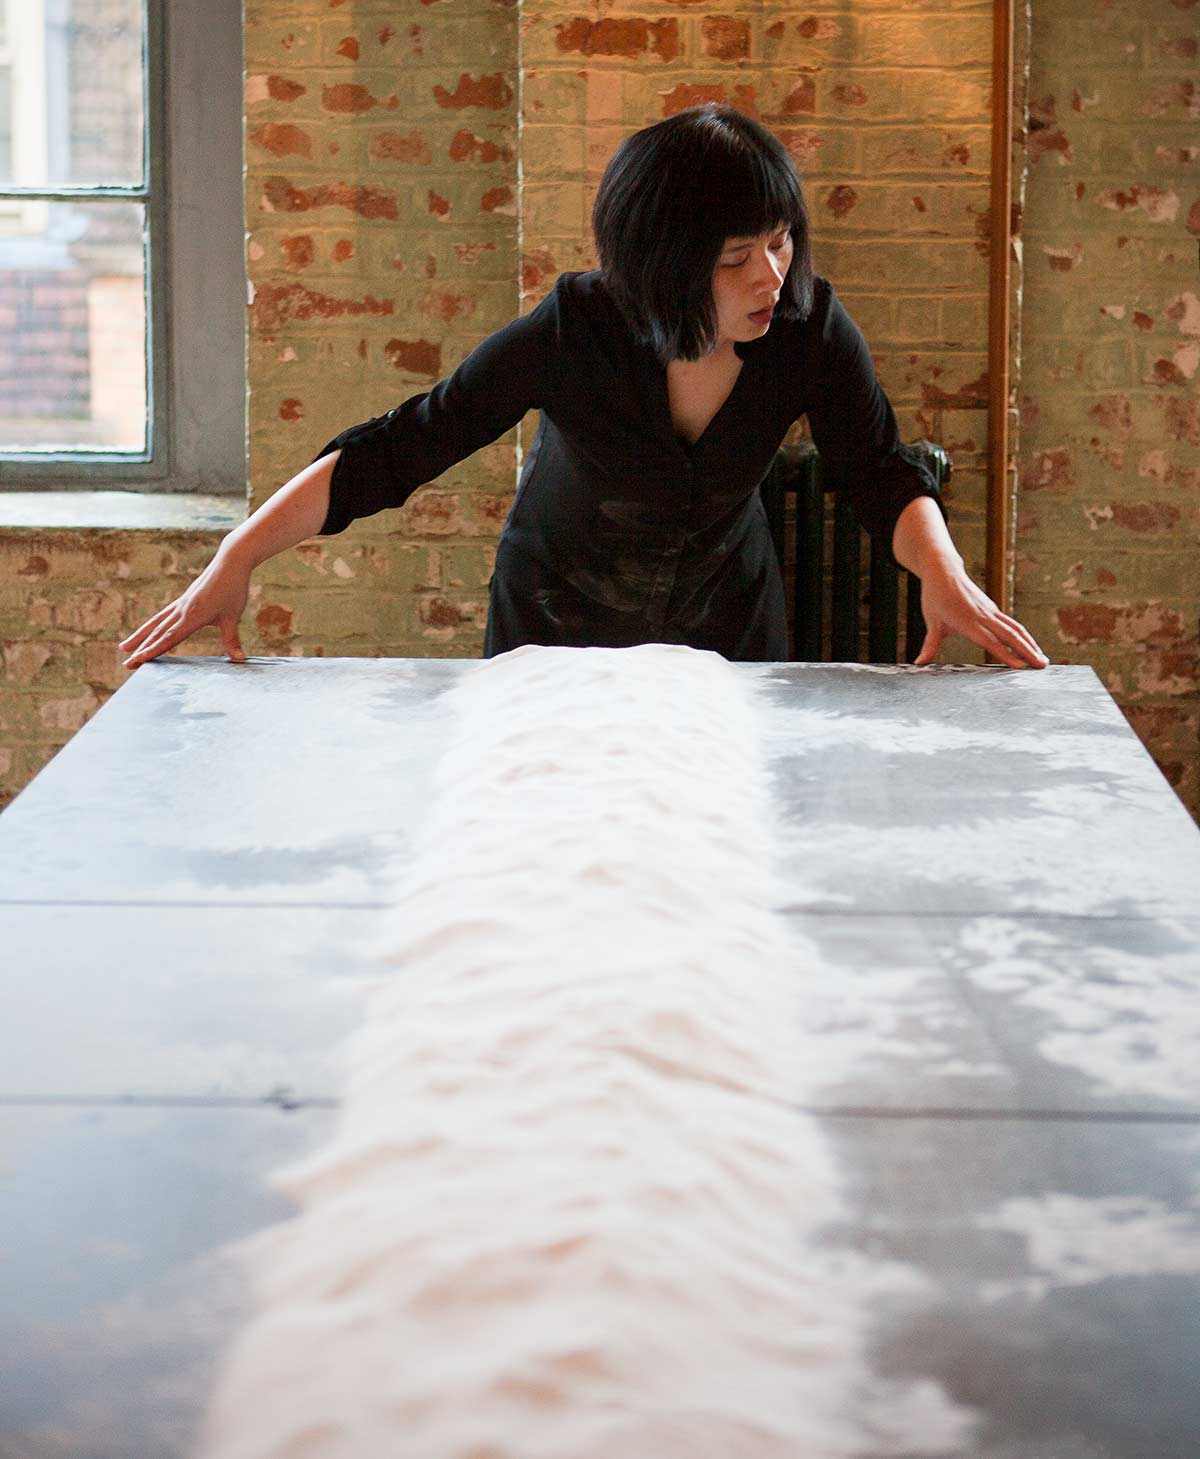 Chun Hua Catherine Dong' performance in London, she engages with salt using her body